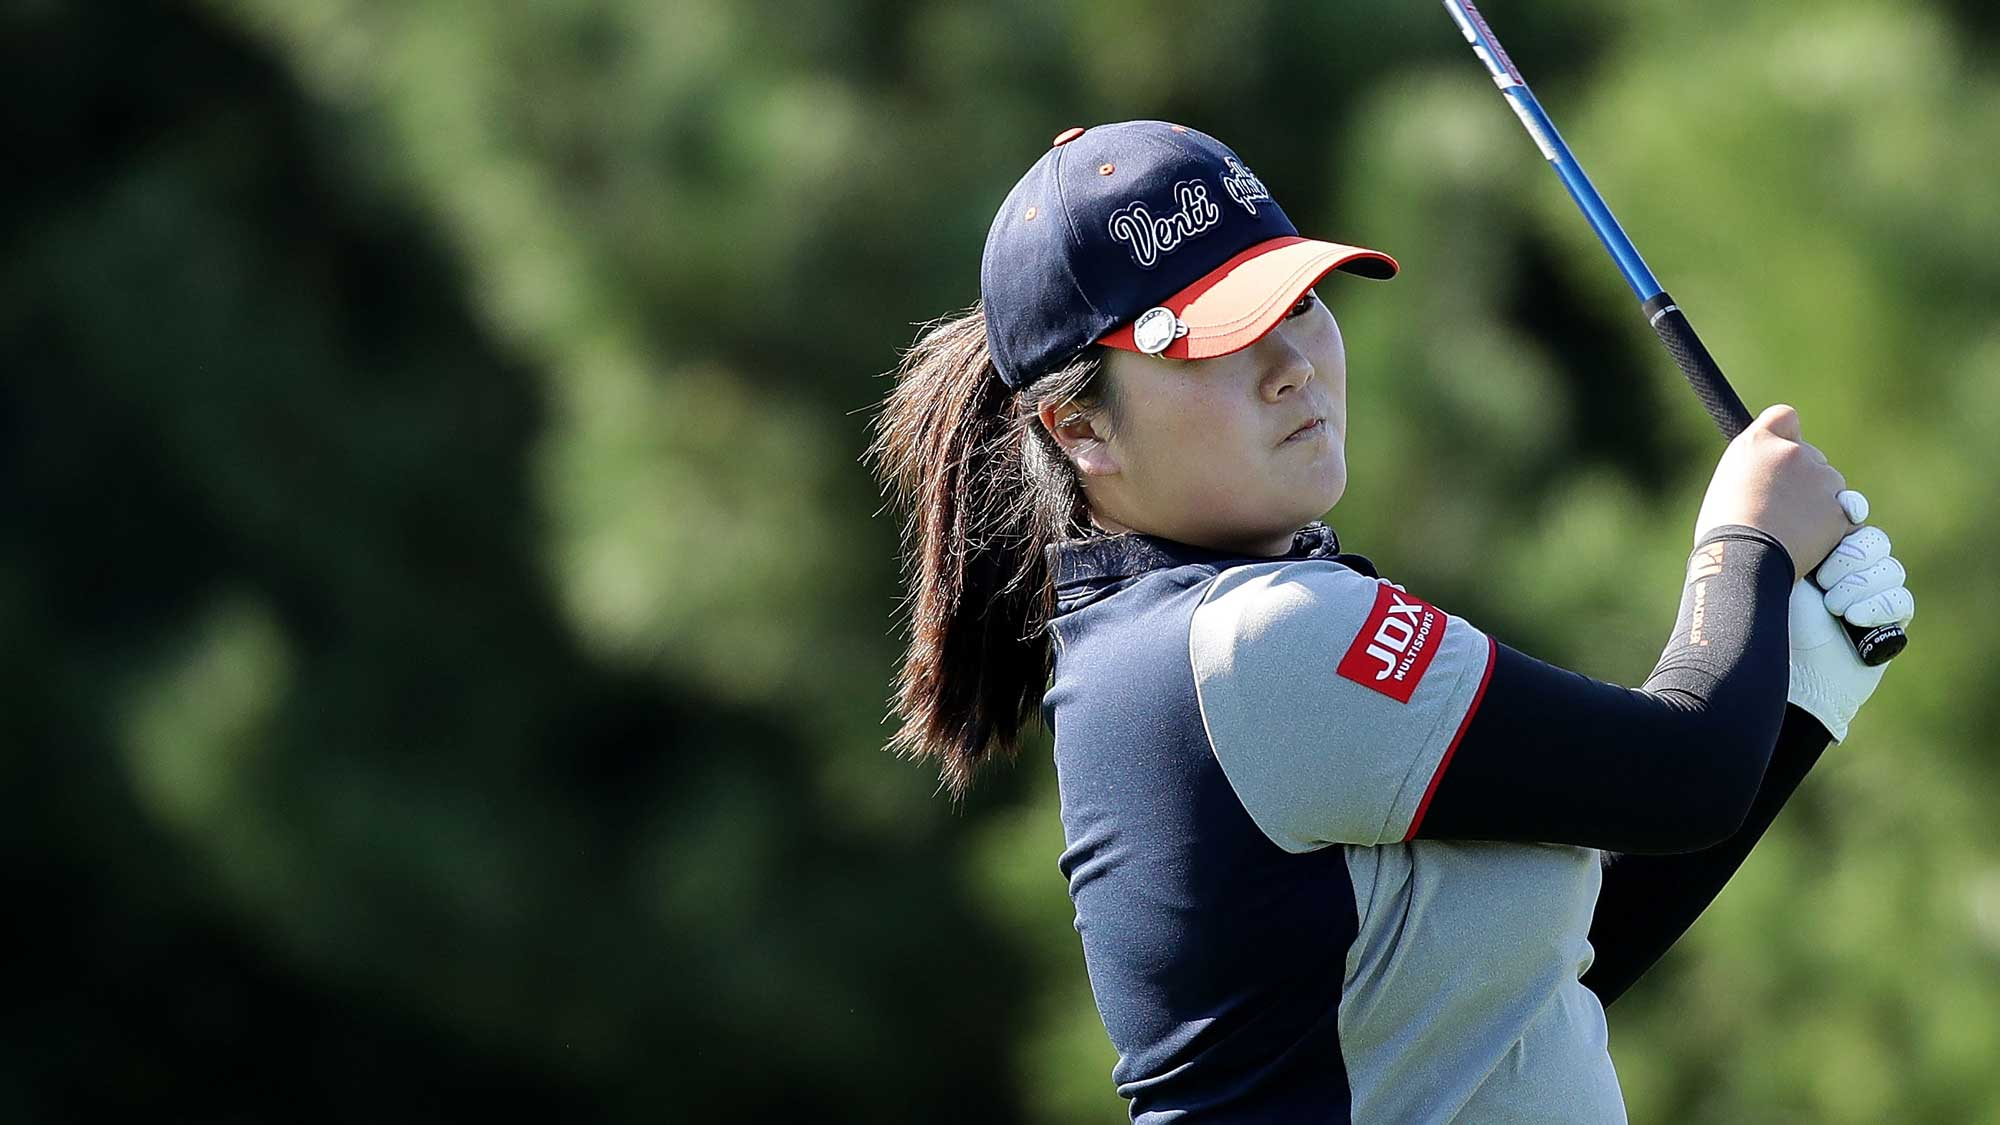 Angel Yin of United States plays a tee shot on the 2nd hole during the second round of the LPGA KEB Hana Bank Championship